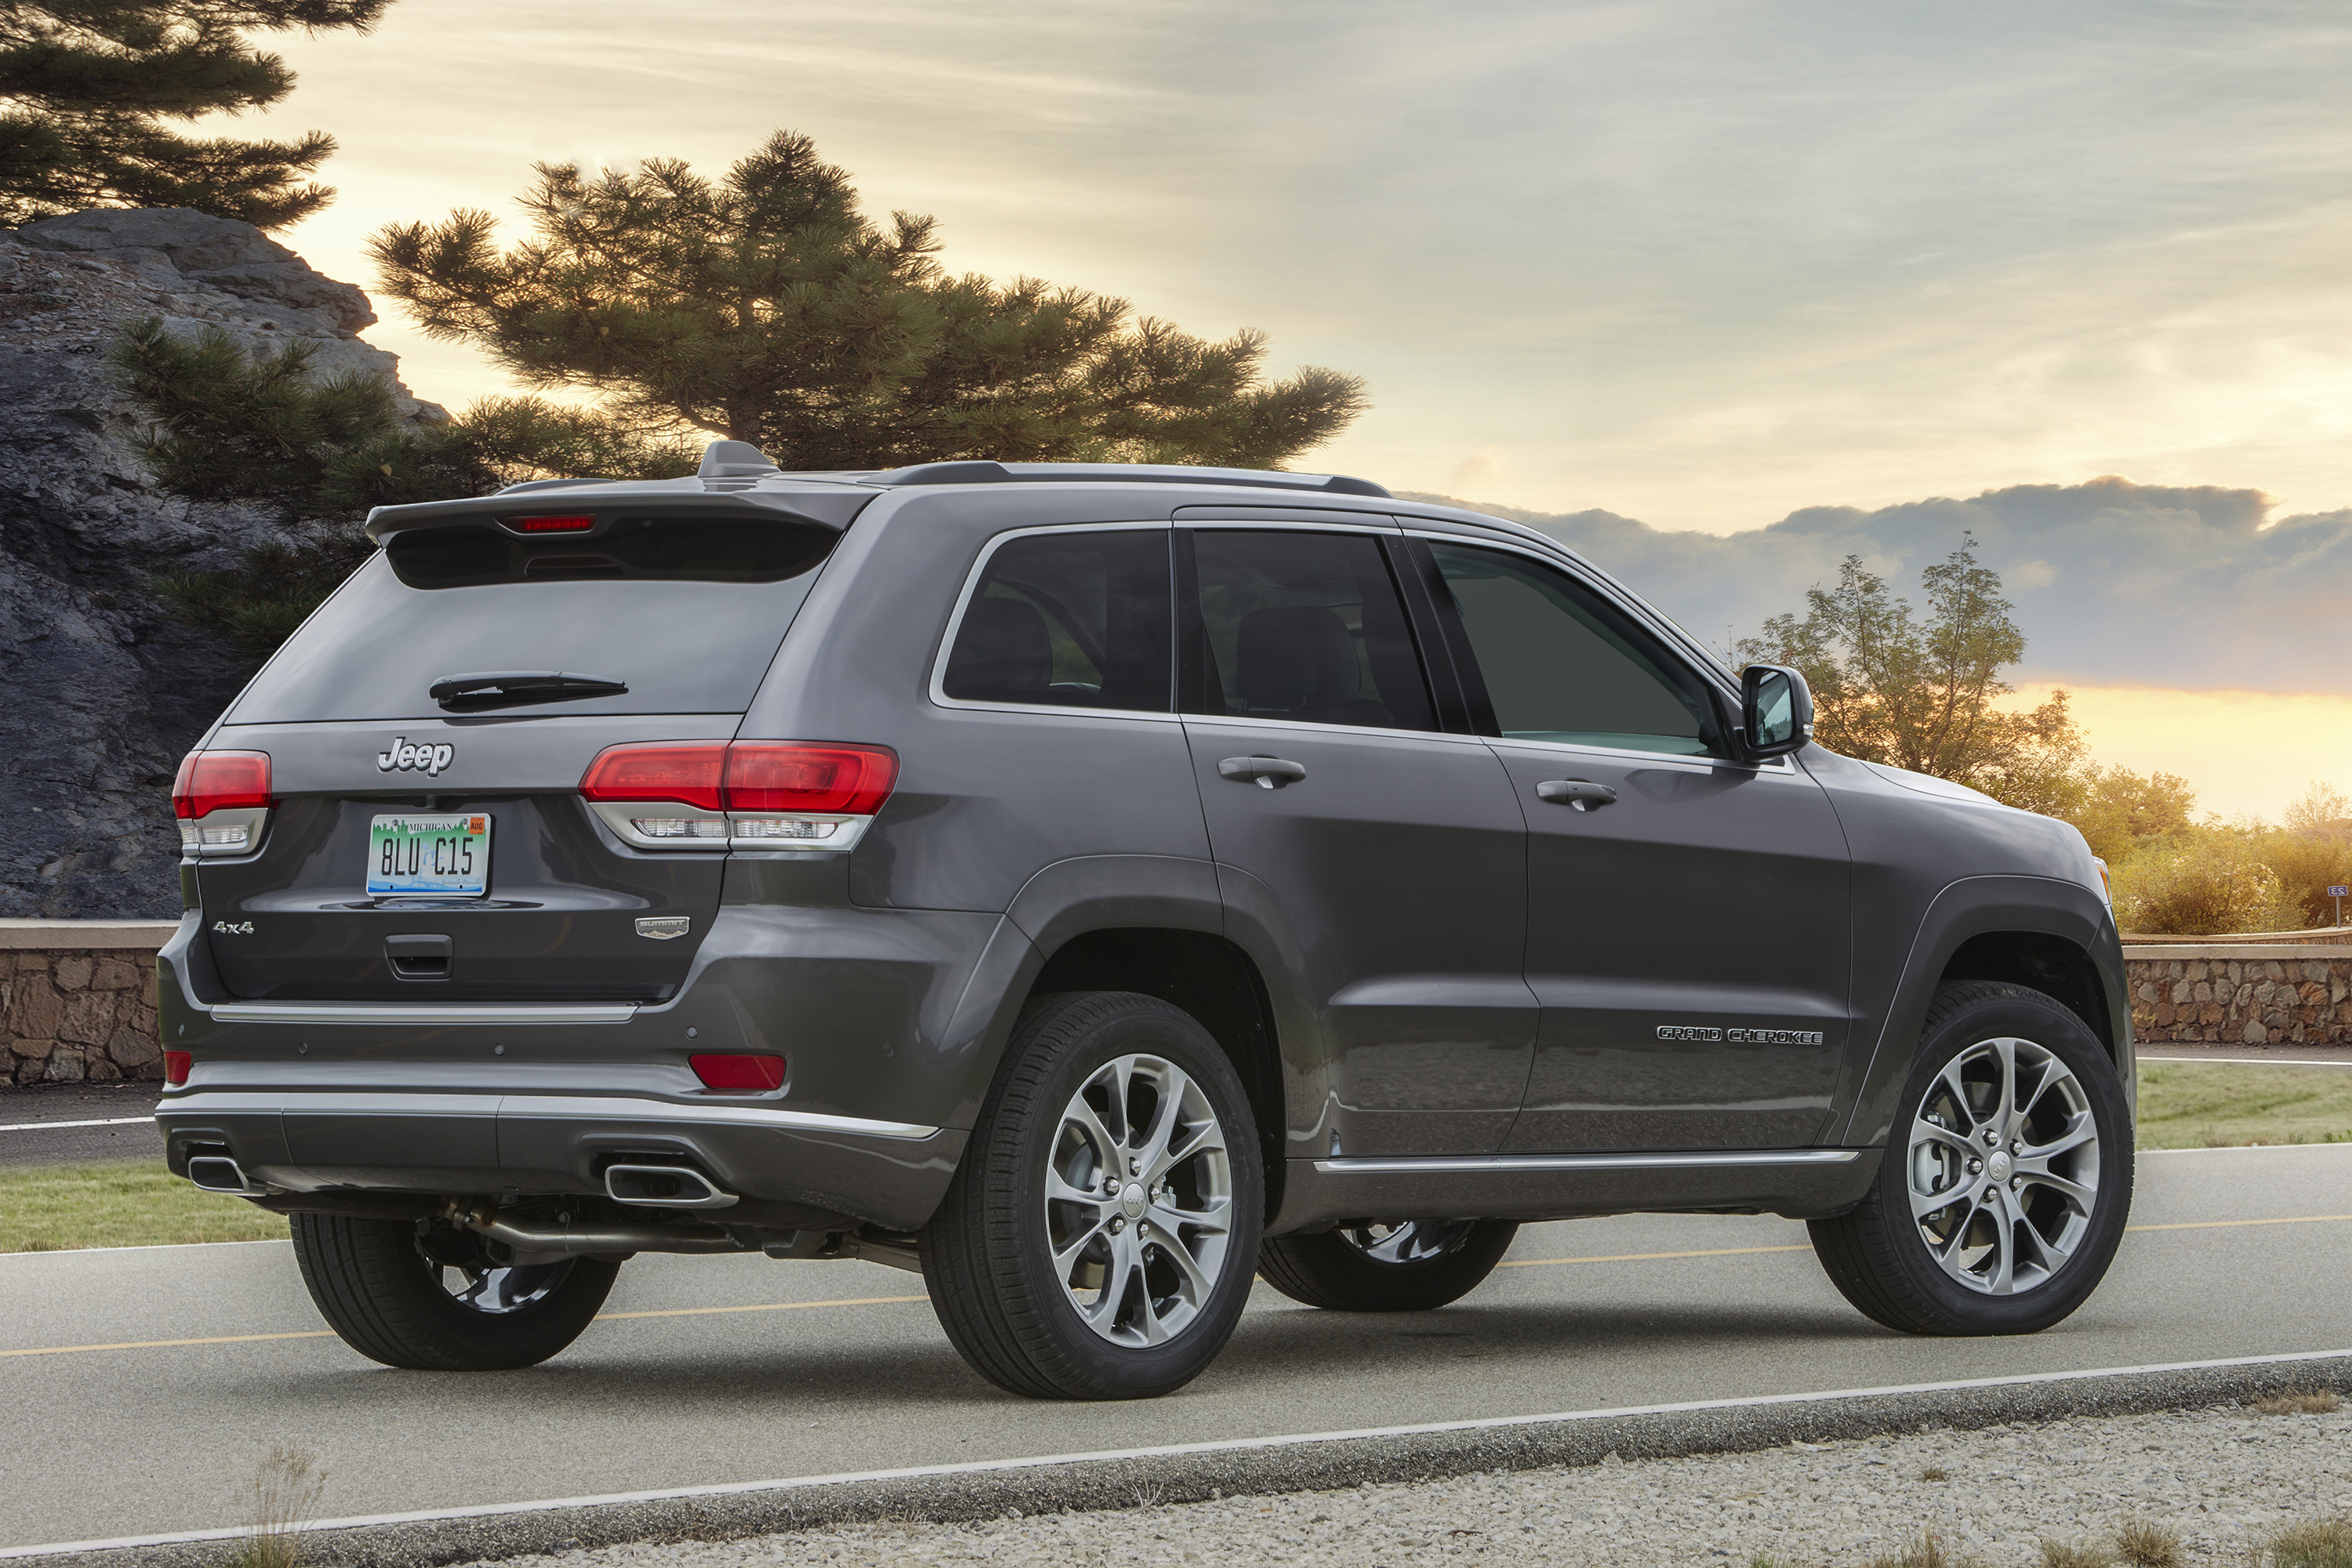 2020 Ford Explorer Vs 2019 Jeep Grand Cherokee Top Speed